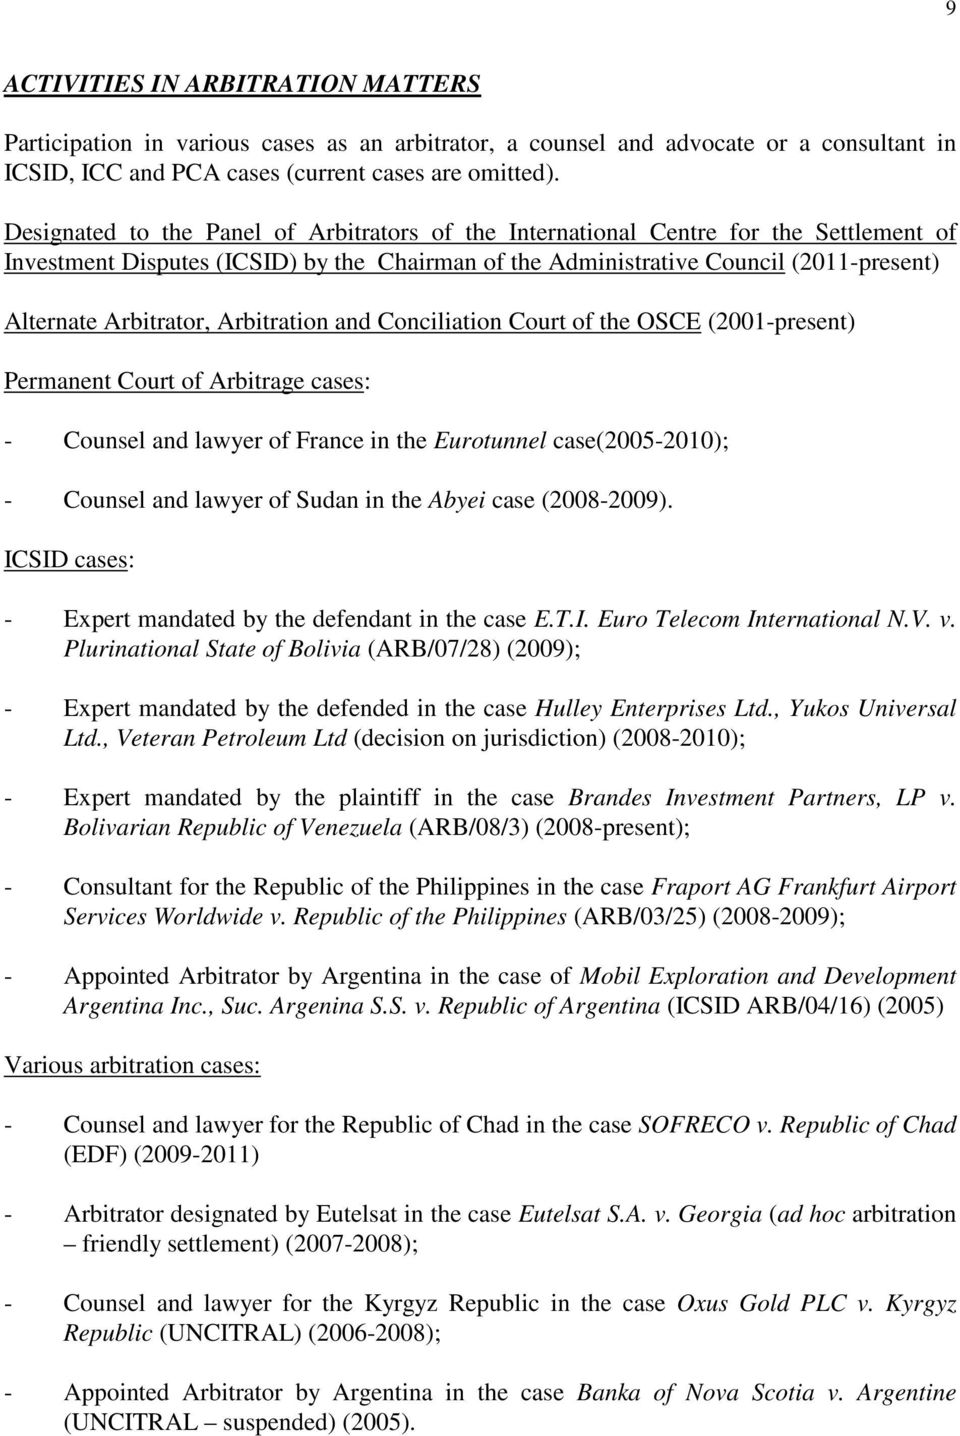 Arbitration and Conciliation Court of the OSCE (2001-present) Permanent Court of Arbitrage cases: - Counsel and lawyer of France in the Eurotunnel case(2005-2010); - Counsel and lawyer of Sudan in